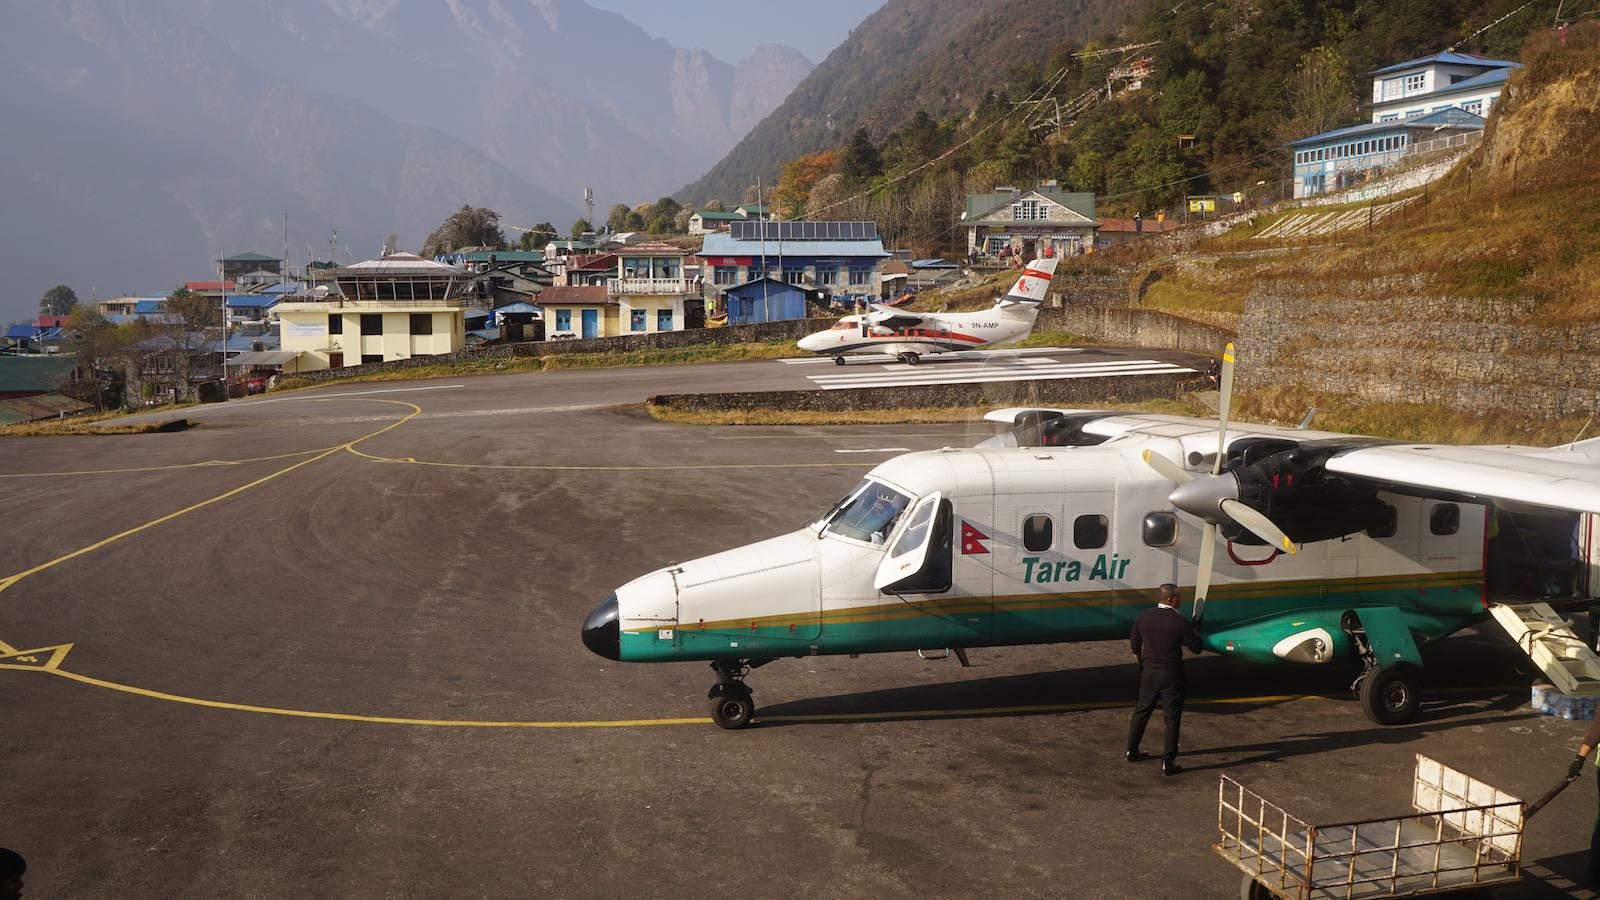 Spent the day at the chaotic Lukla Airport watching flights take off at the most dangerous airport in the world